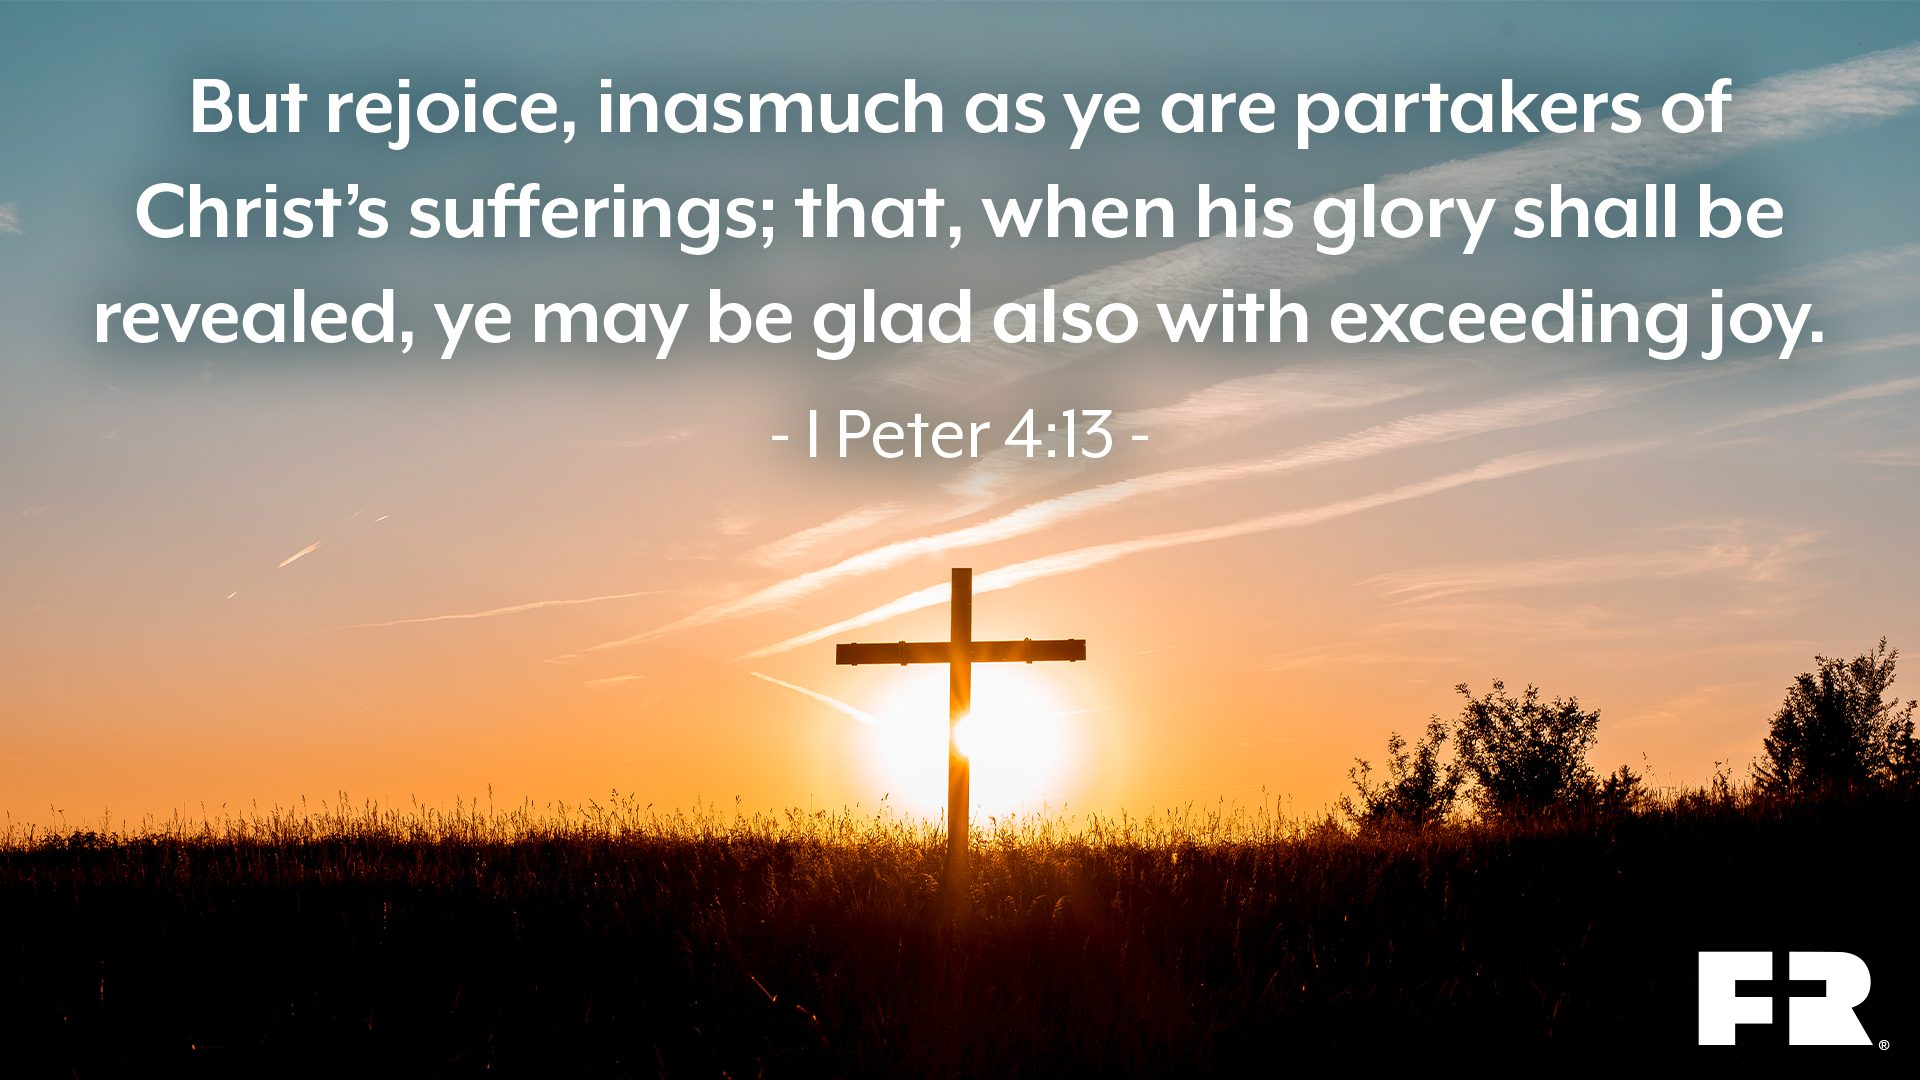 """But rejoice, inasmuch as ye are partakers of Christ's sufferings; that, when his glory shall be revealed, ye may be glad also with exceeding joy."""